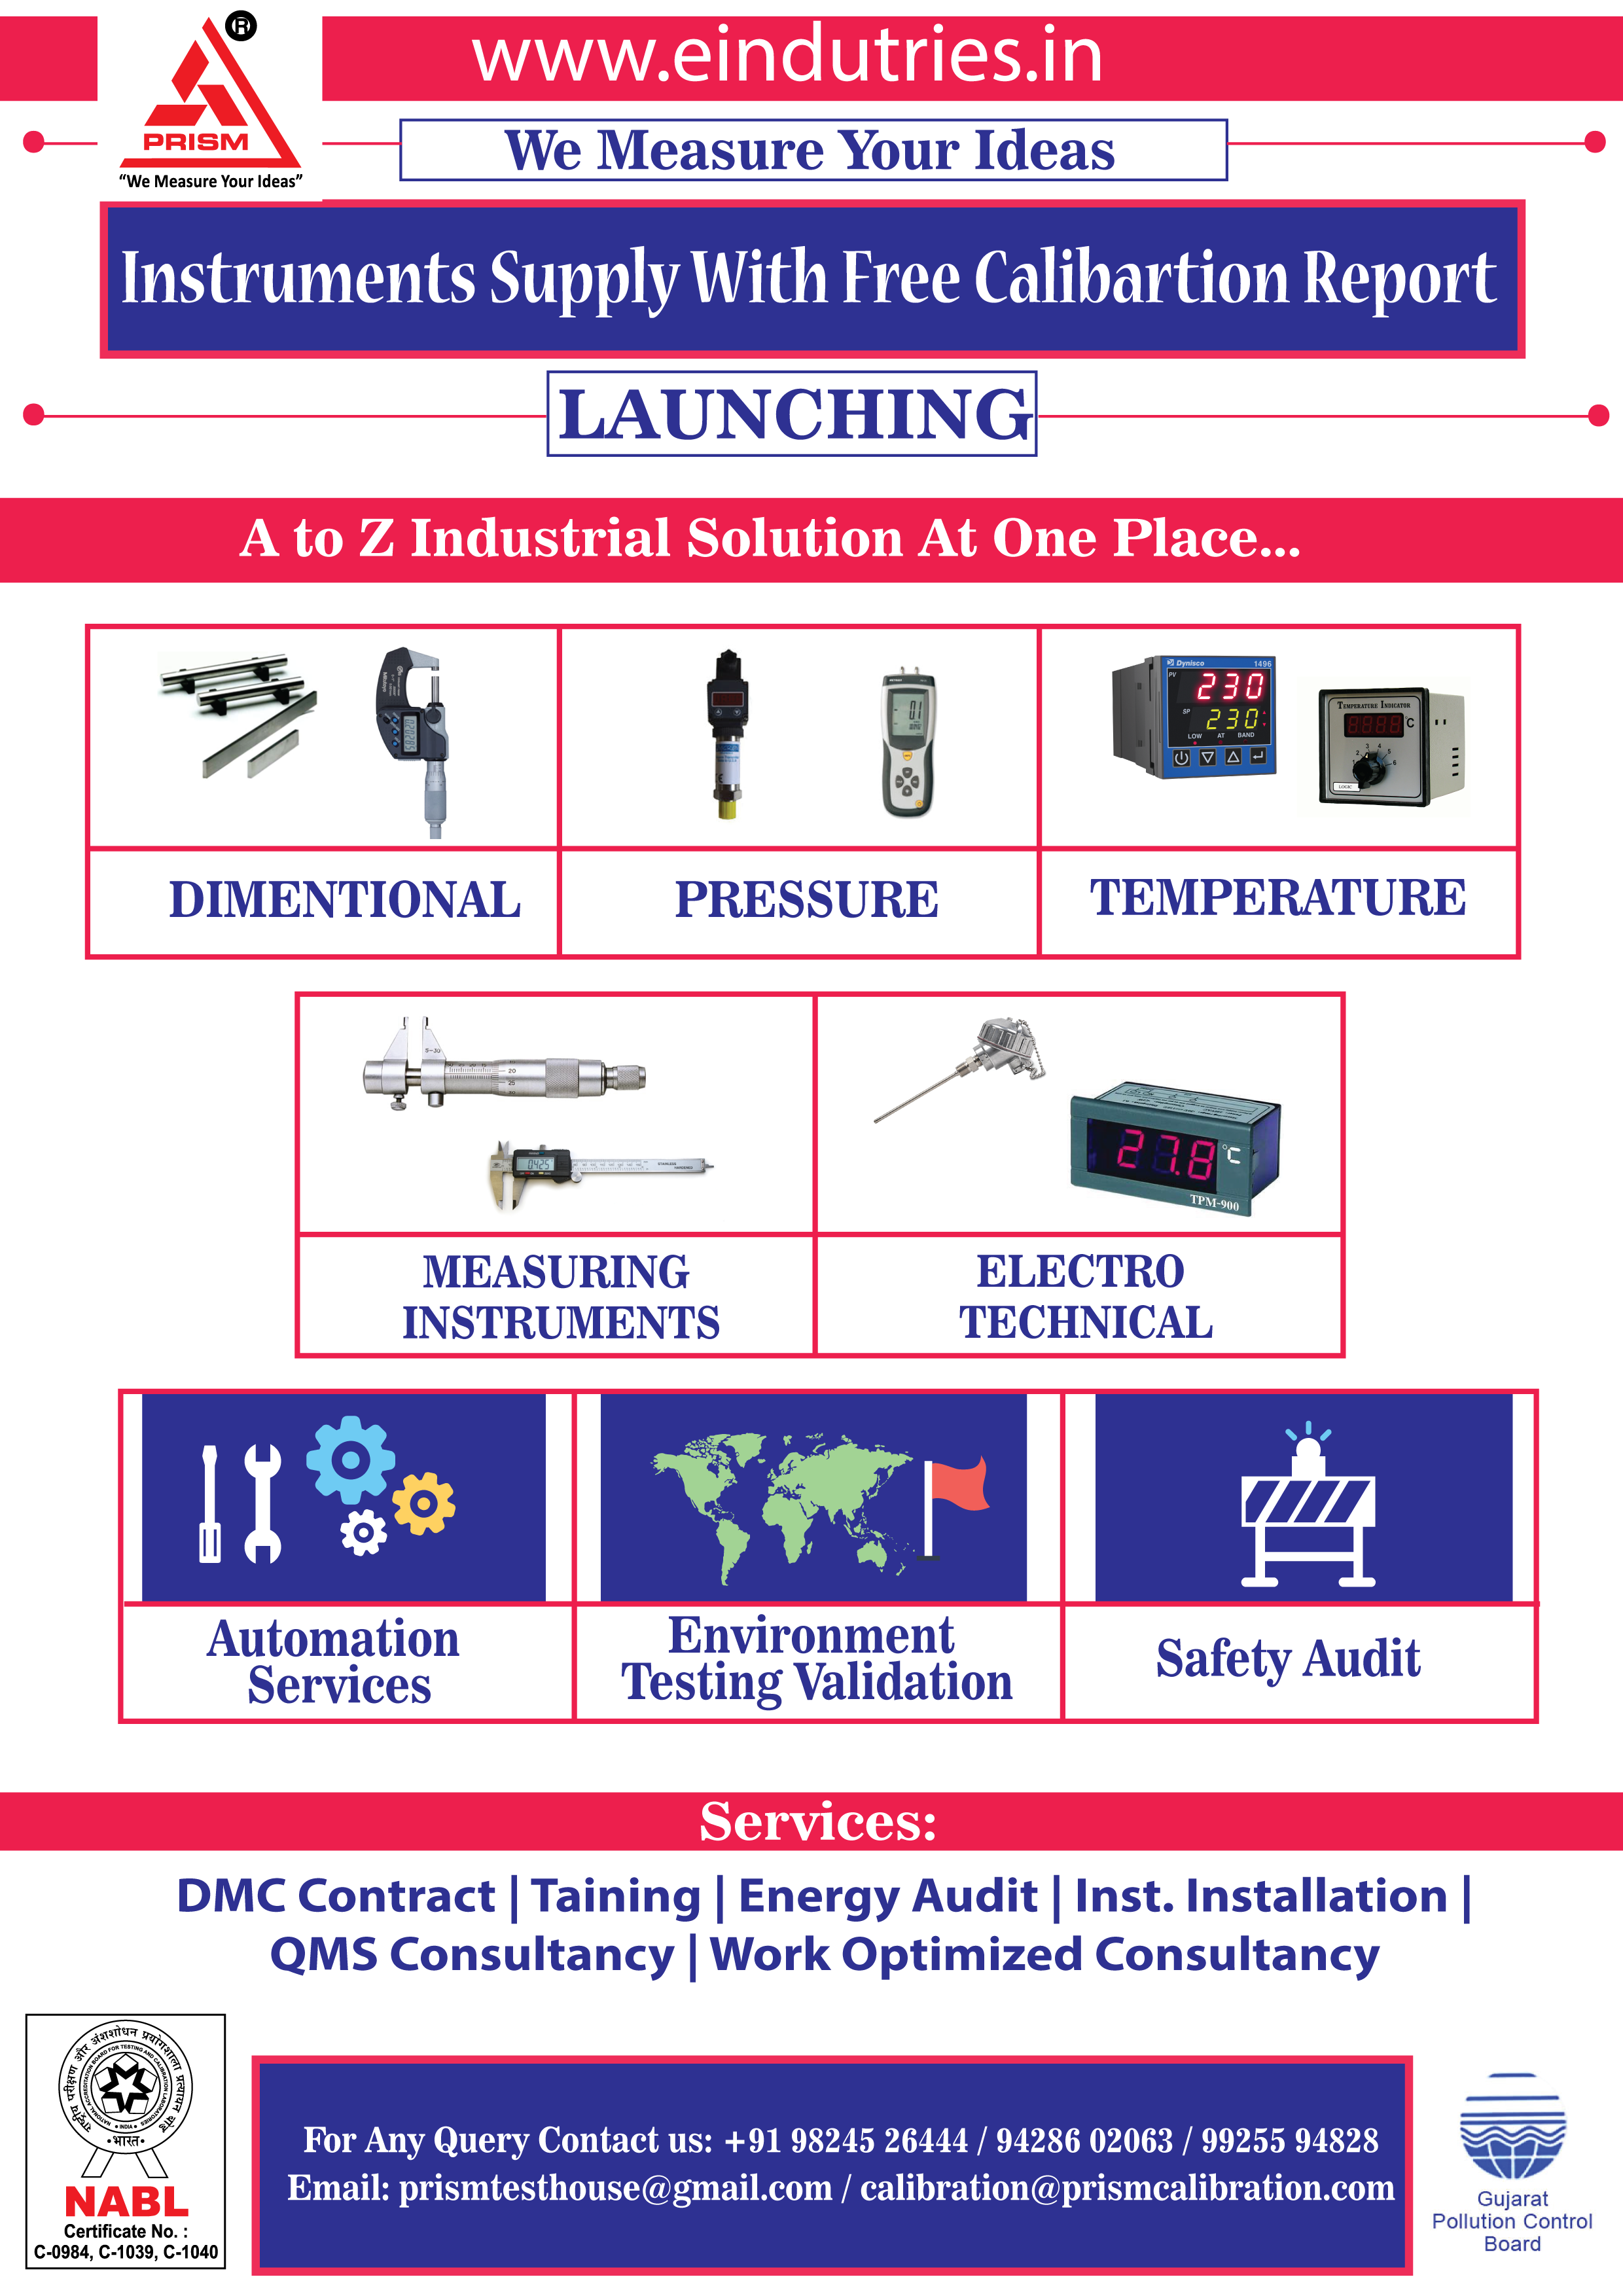 A TO Z INDUSTRIAL INSTRUMENTS SUPPLIER @ REASONABLE RATES & GOOD QUALITY